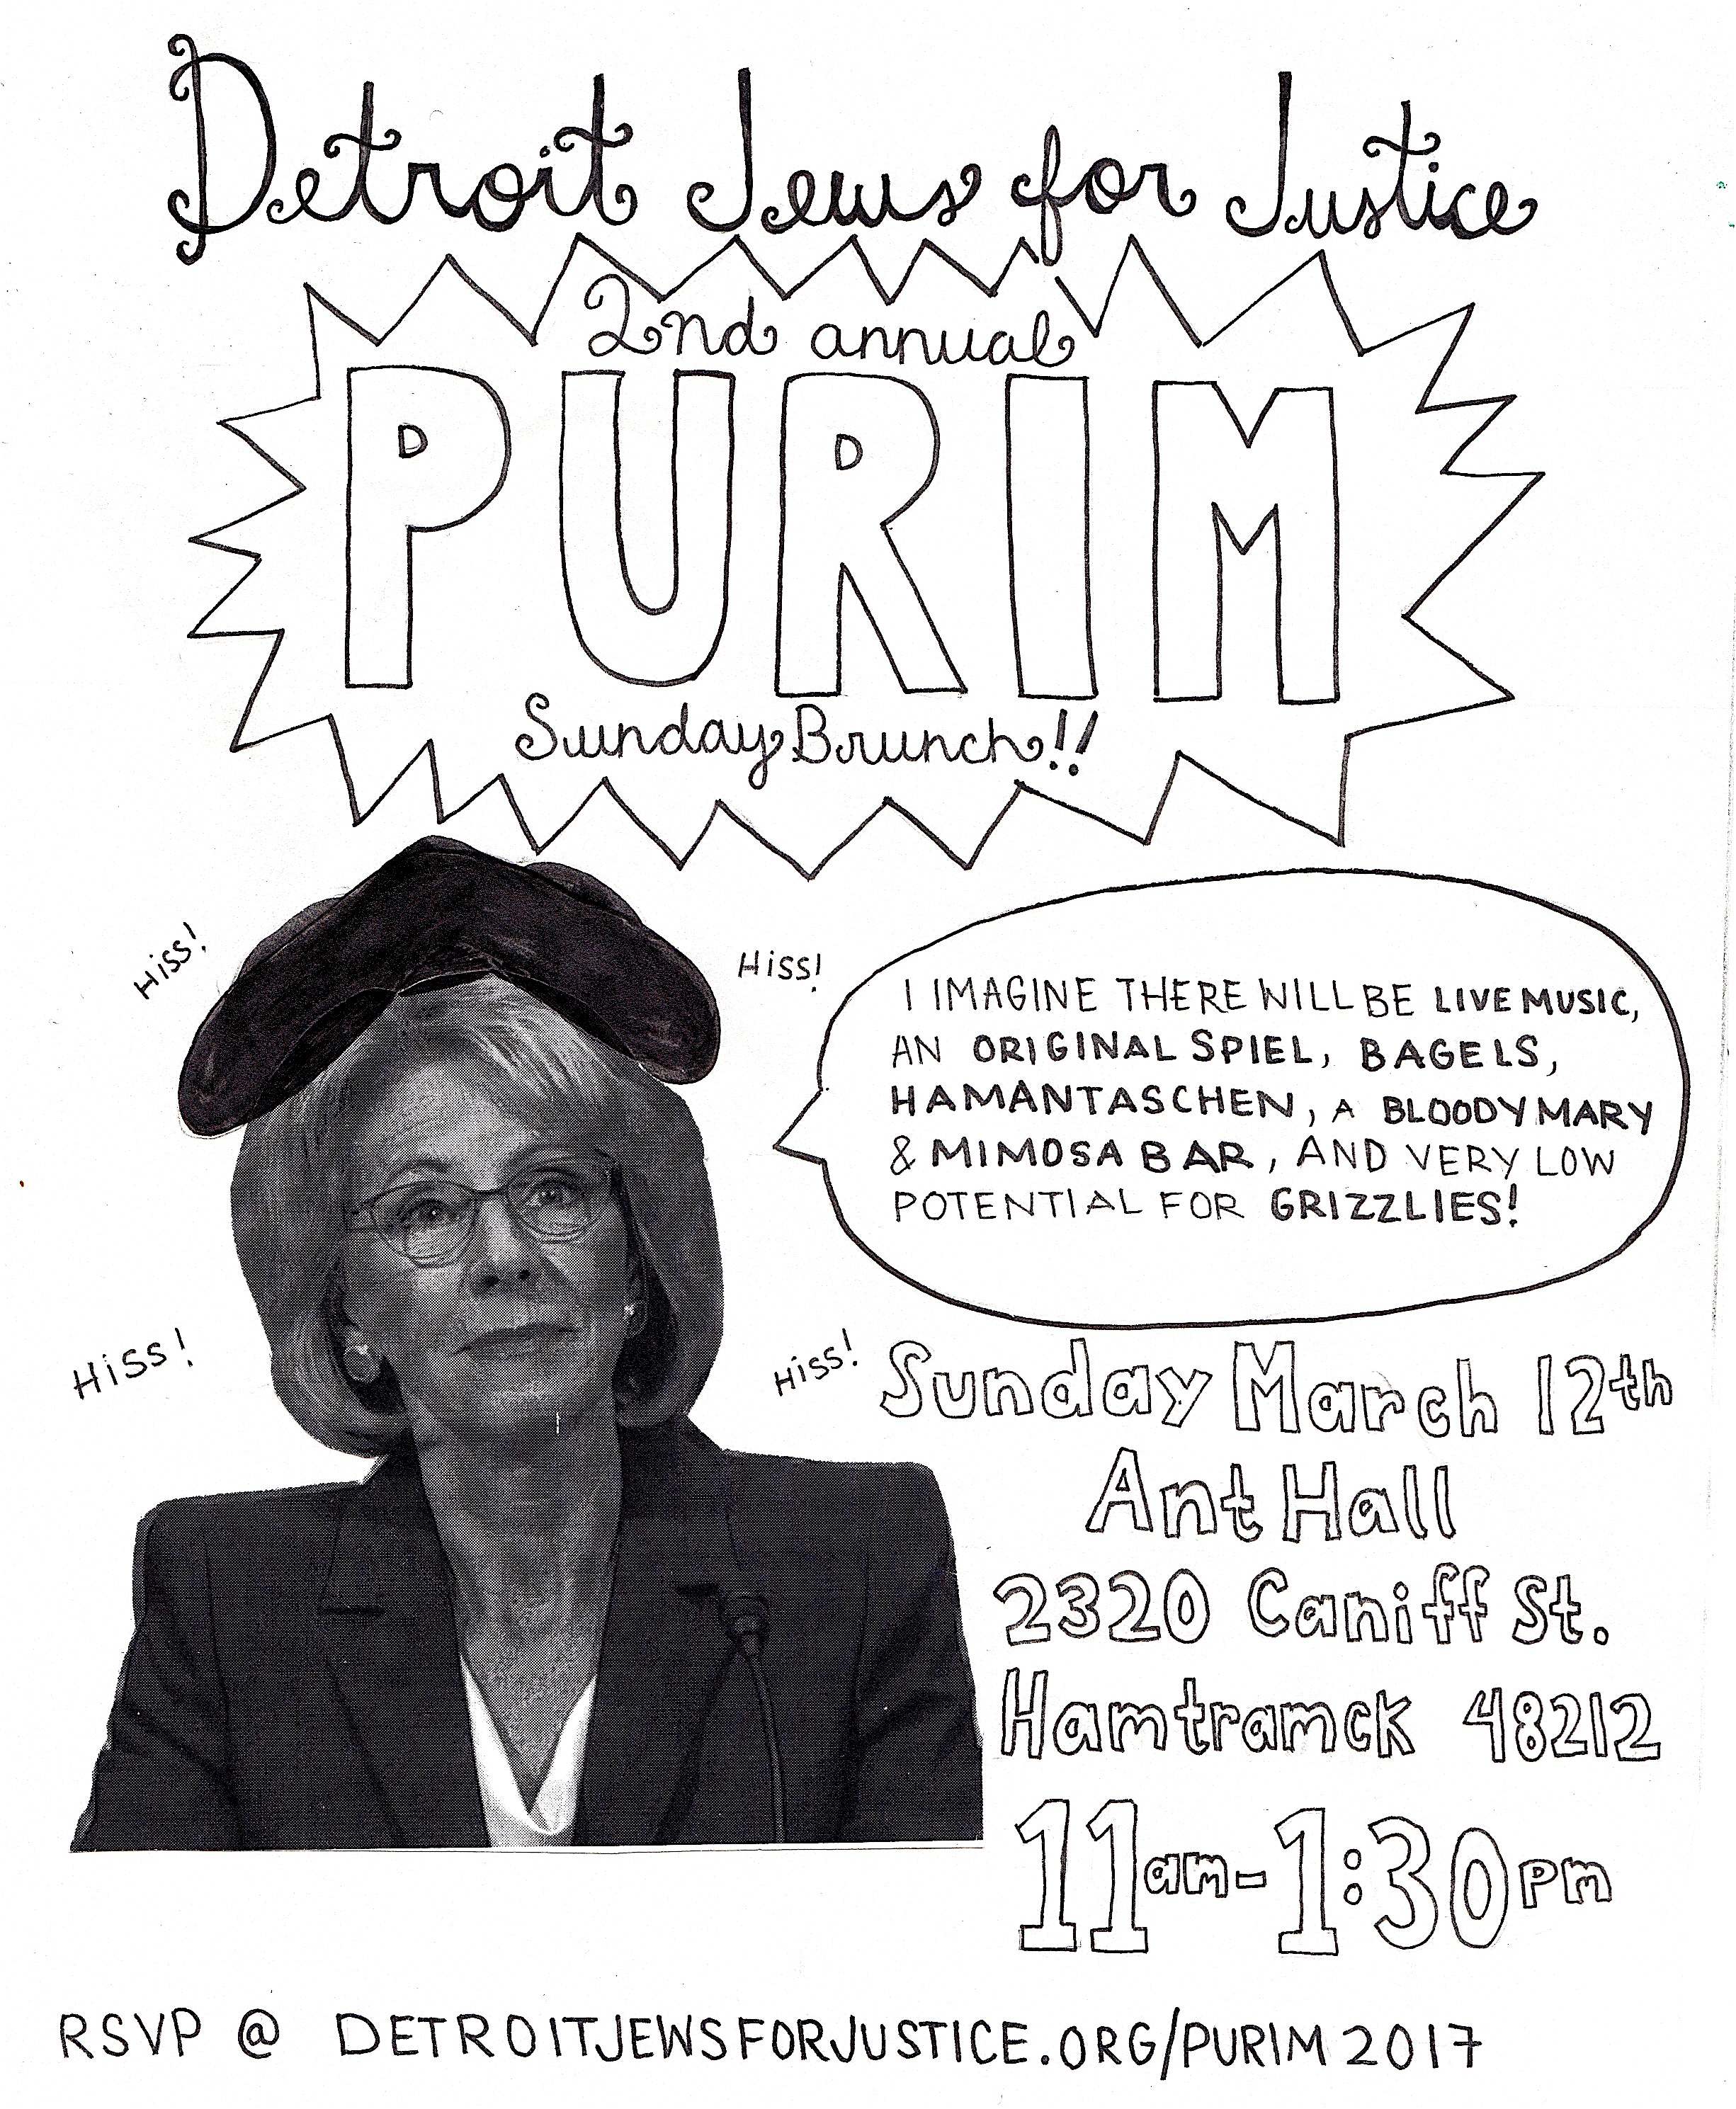 Purim_flyer_scan.jpeg